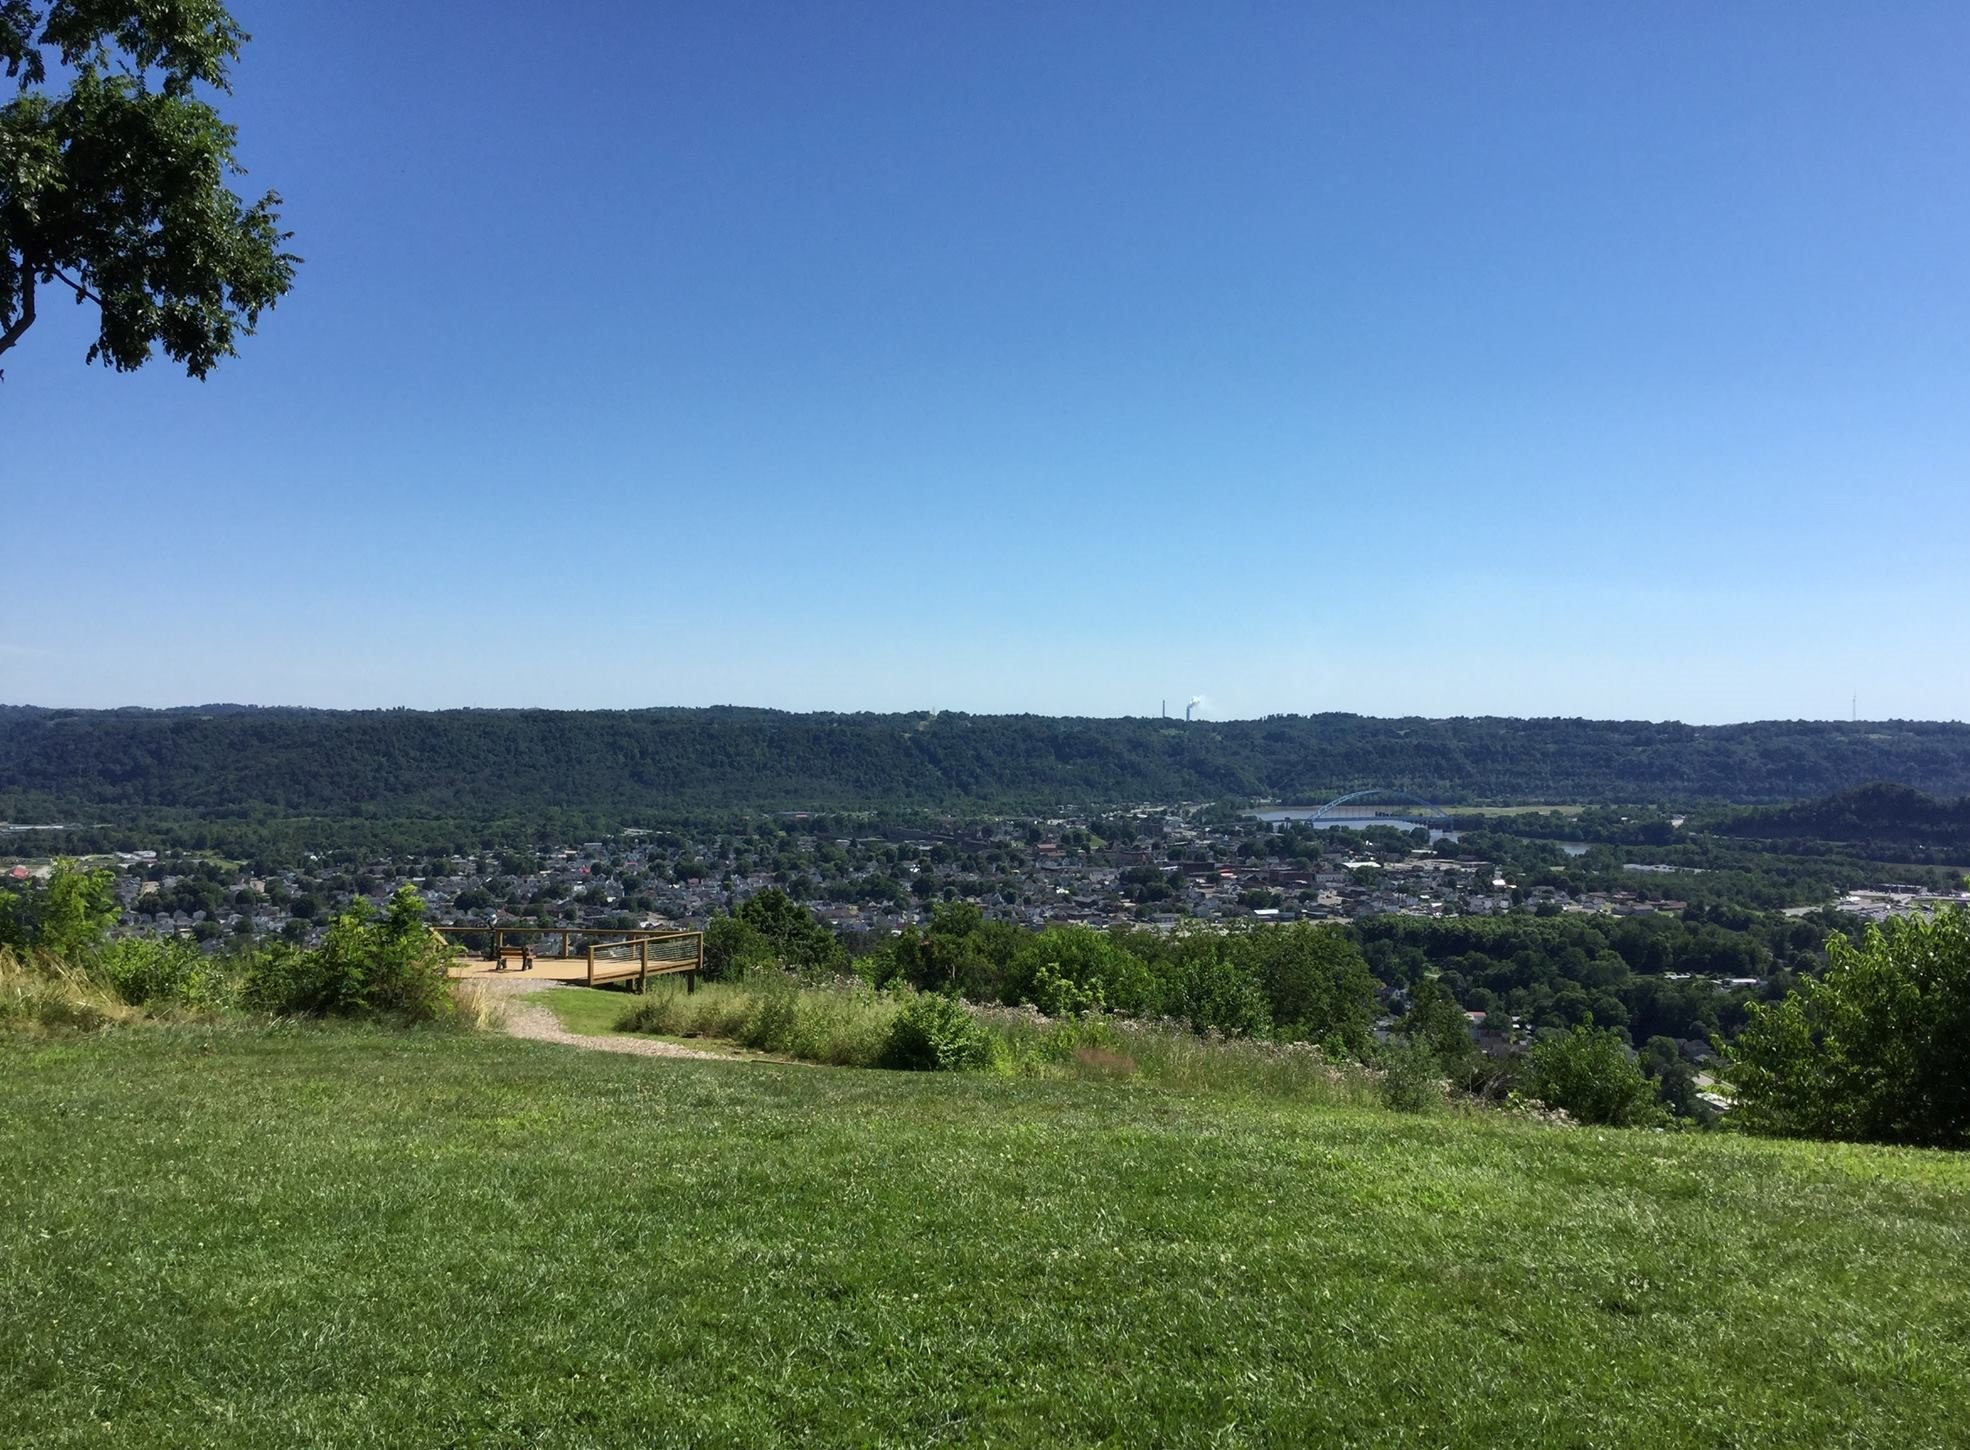 The view of Moundsville from Grand Vue Park's overlook. (Photo courtesy of Susan Jones)